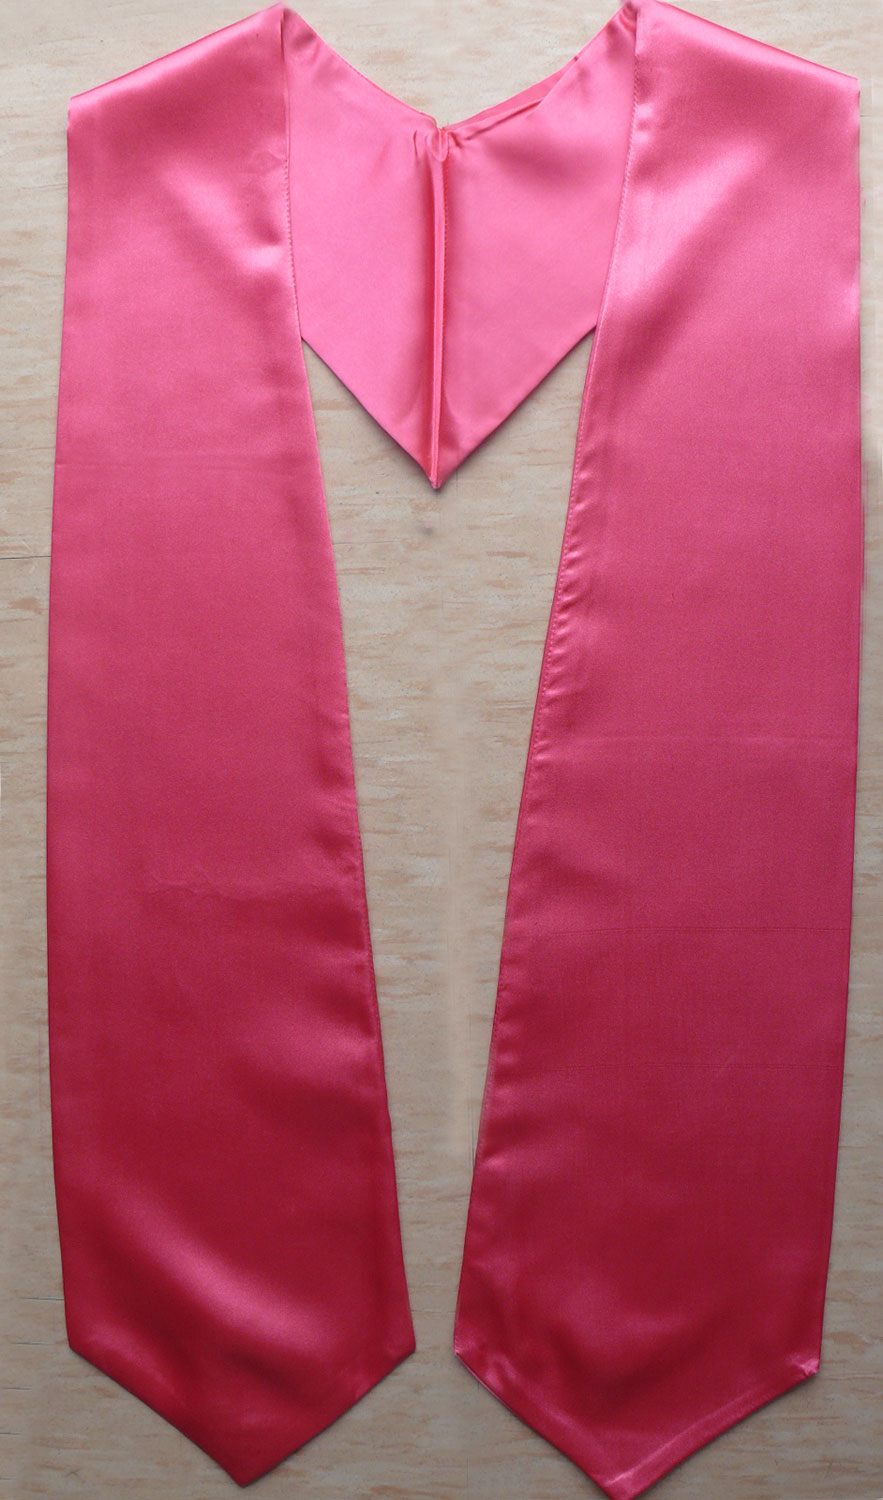 Pink Color Graduation Collection from Graduation Product1